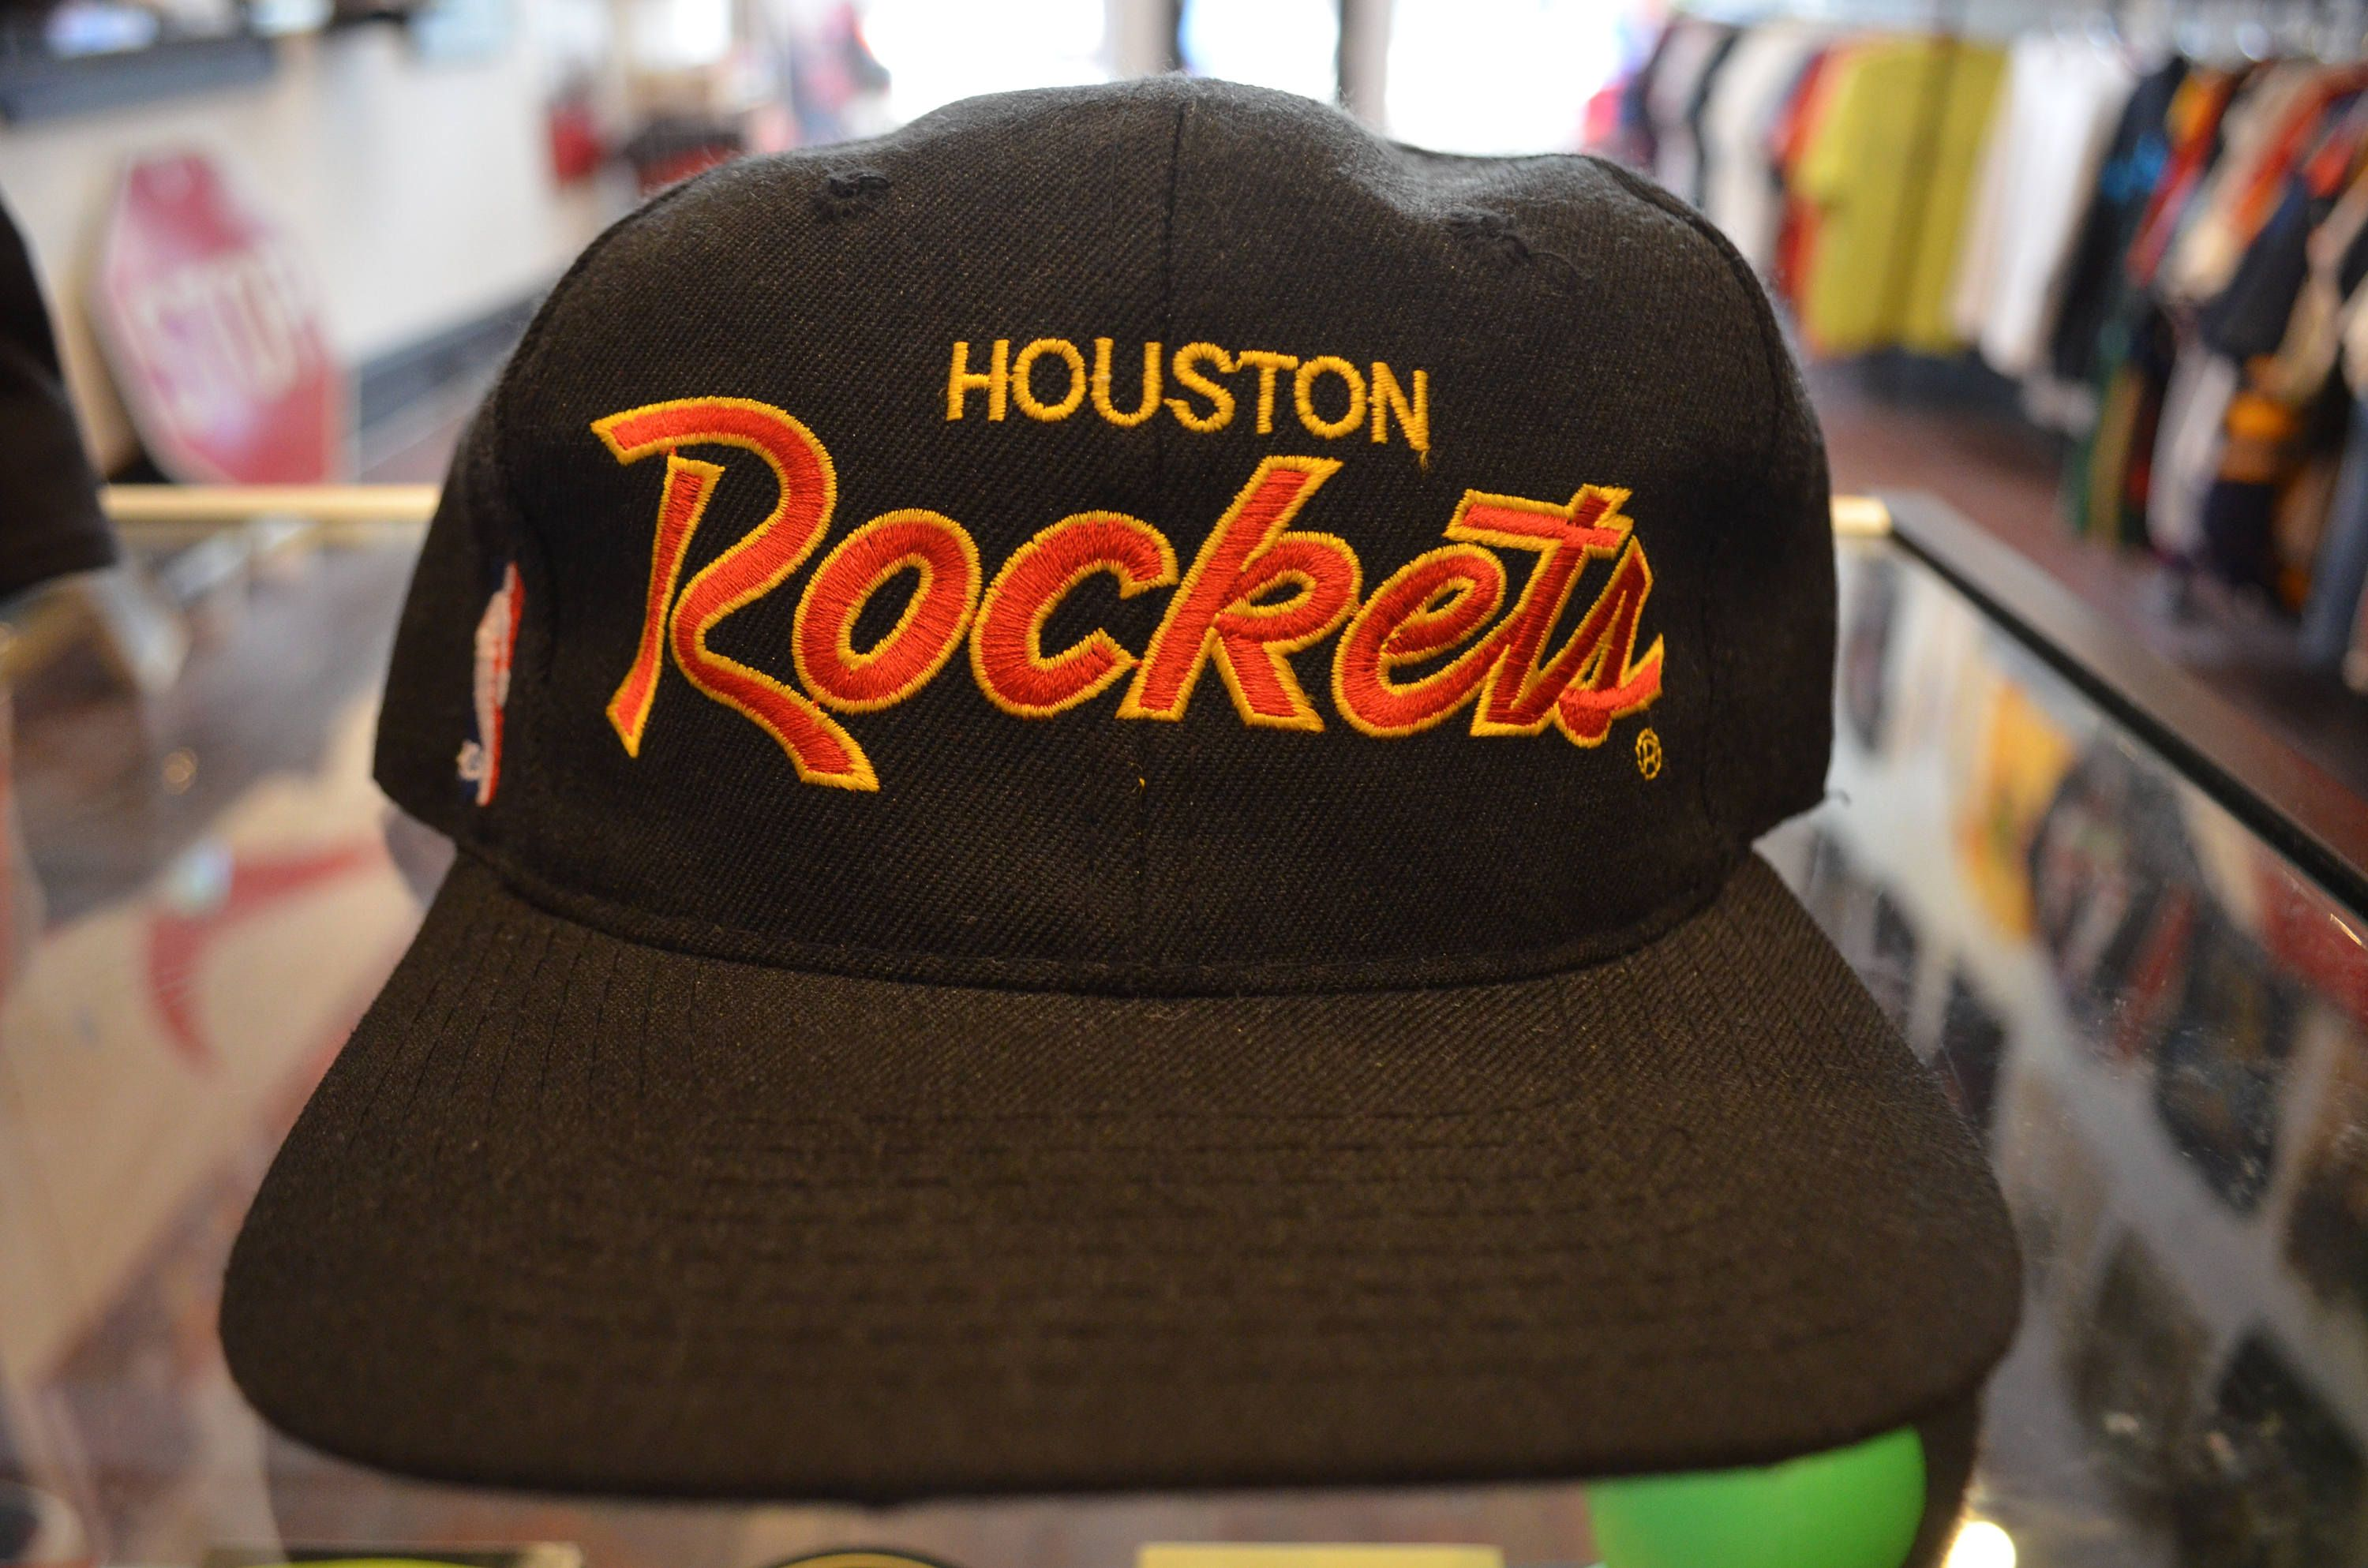 787e4bd43fb Vintage 90s Sports Specialties Script Houston Rockets NBA Unisex Snapback  Hat by RadOTR on Etsy